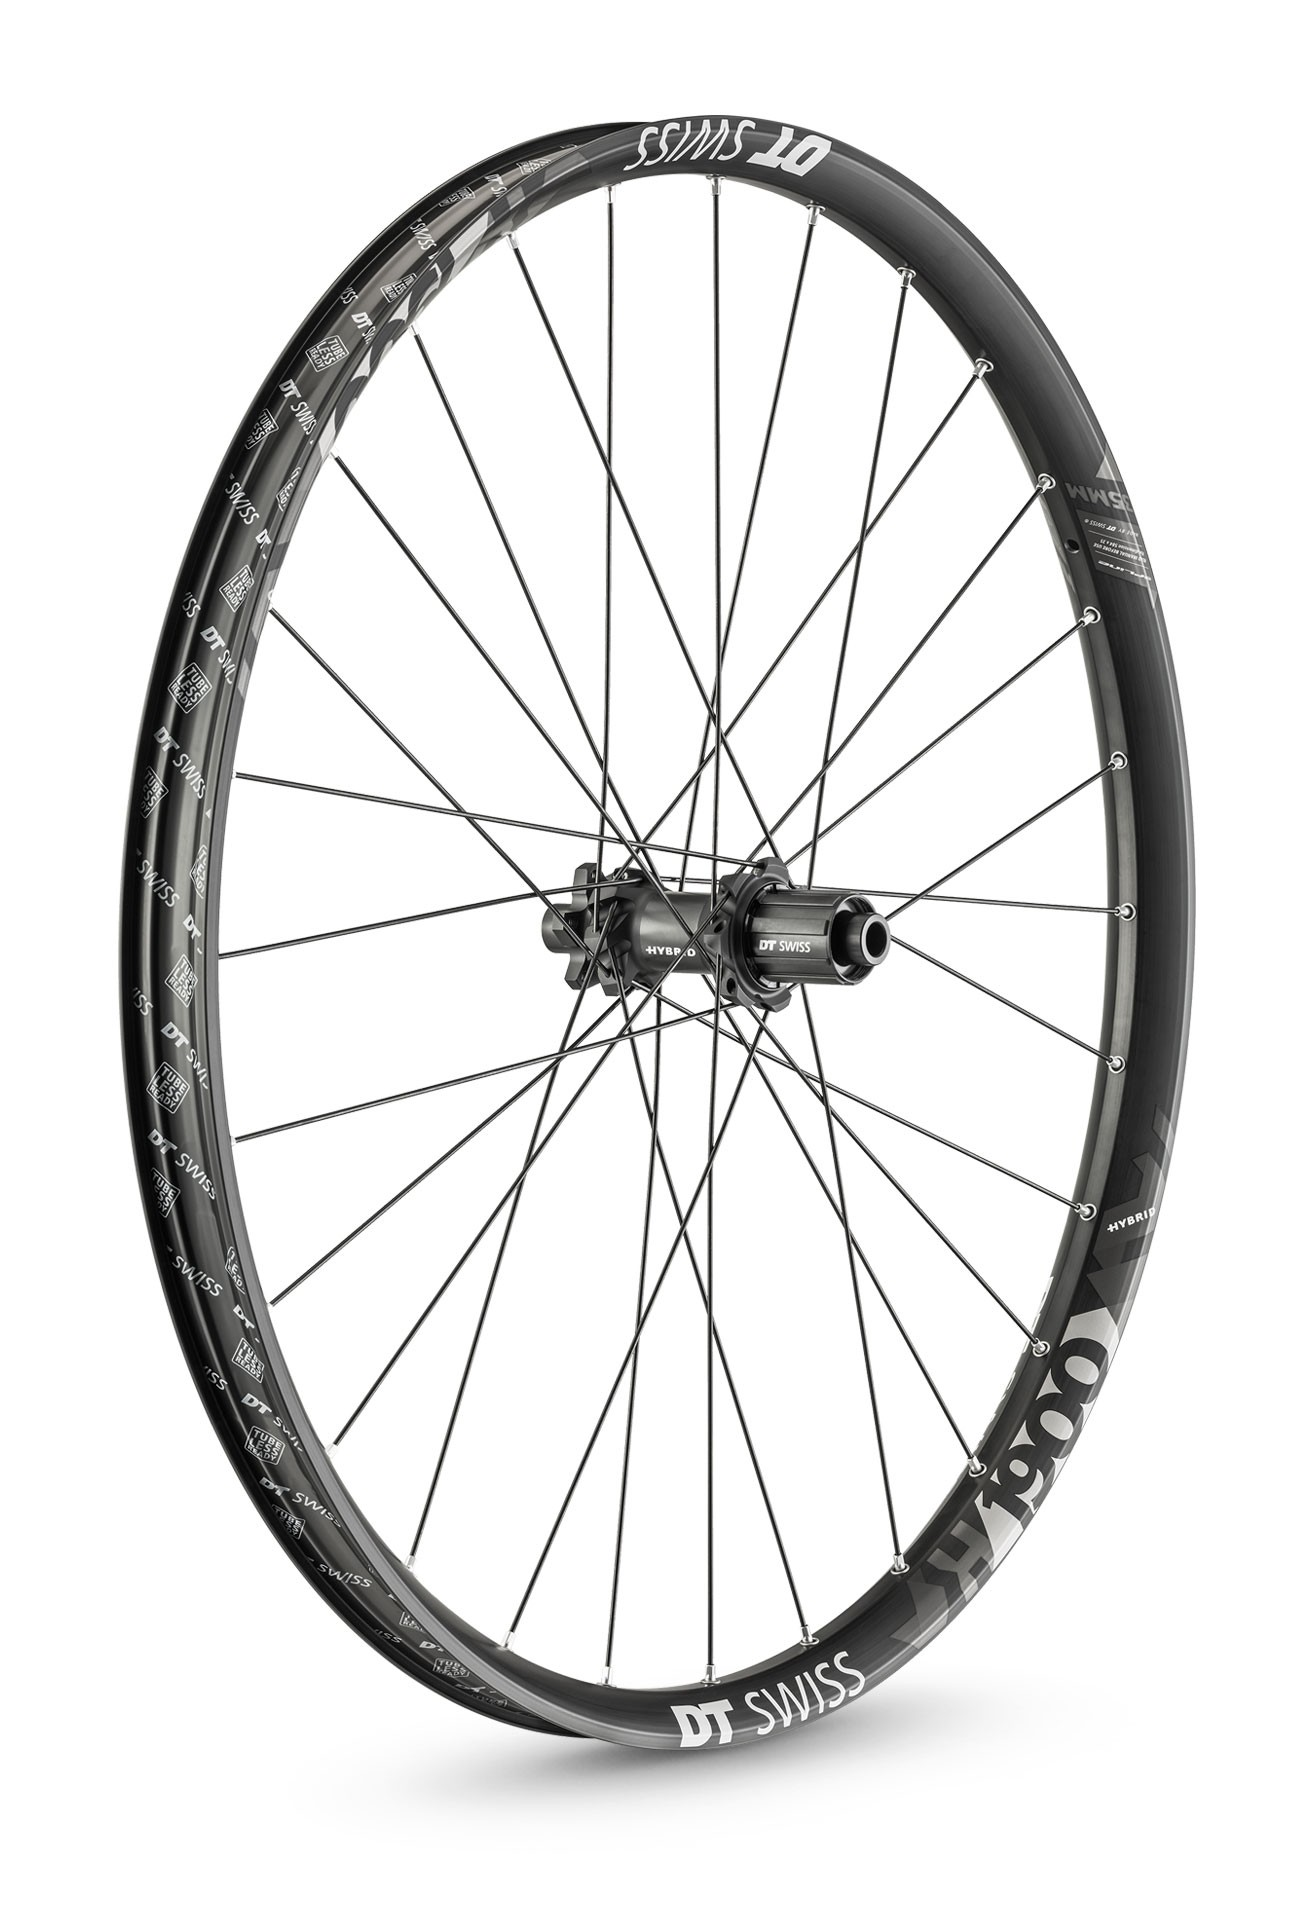 "DT Swiss H1900 Spline 30mm Boost Laufradsatz 27.5"" Modell 2019"